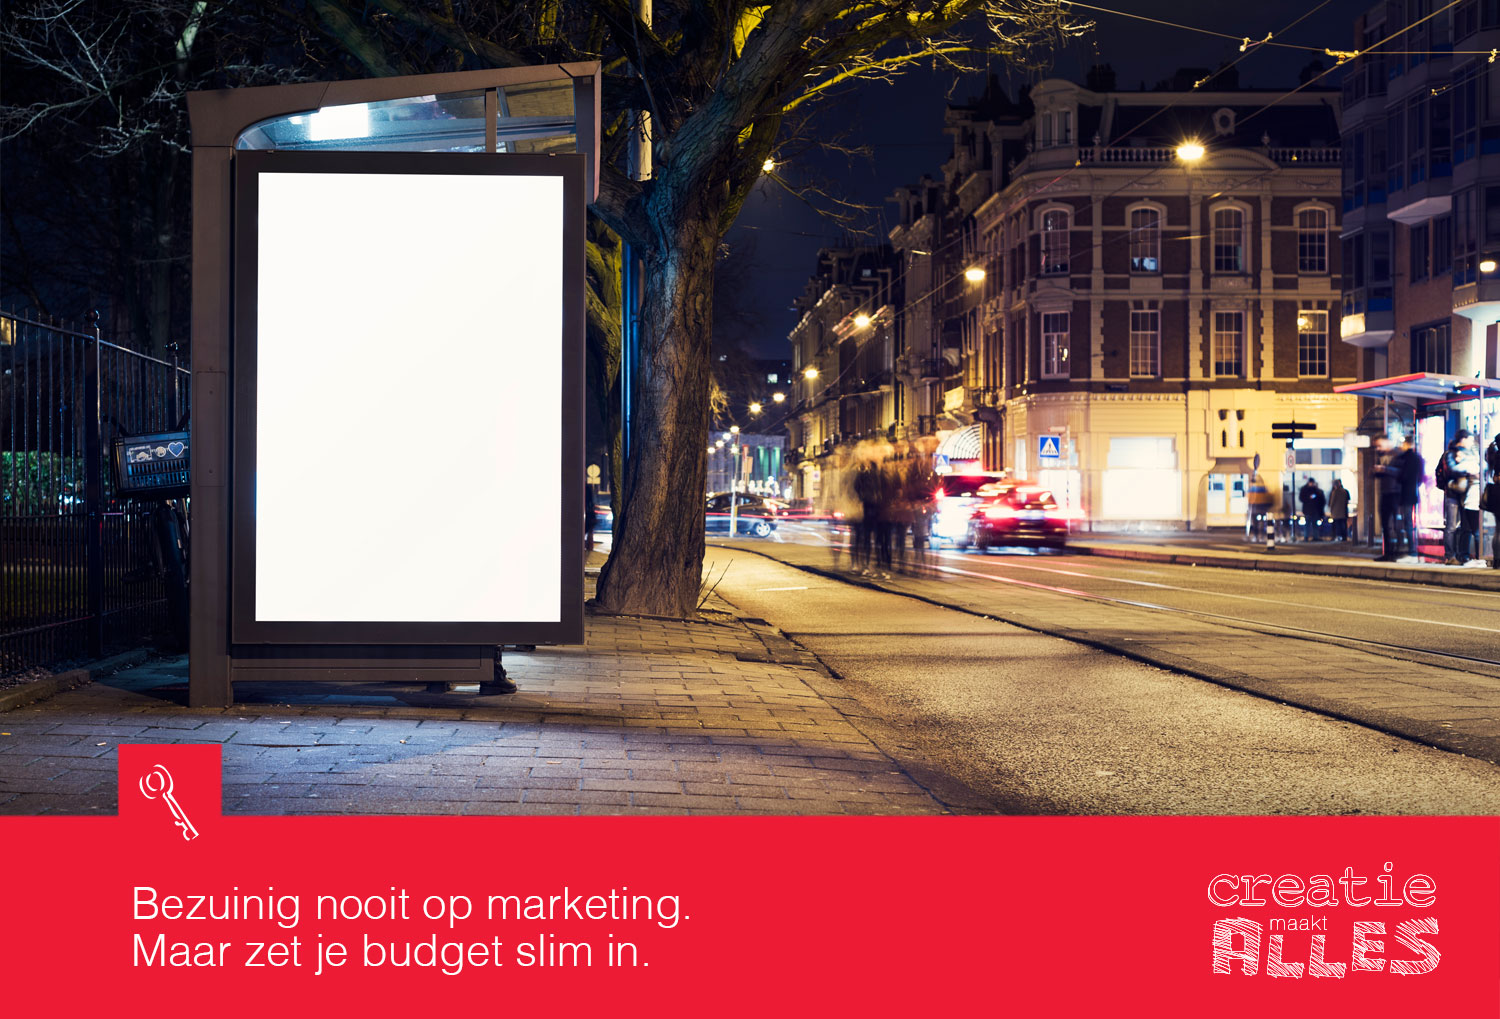 Bezuinigen op marketing?